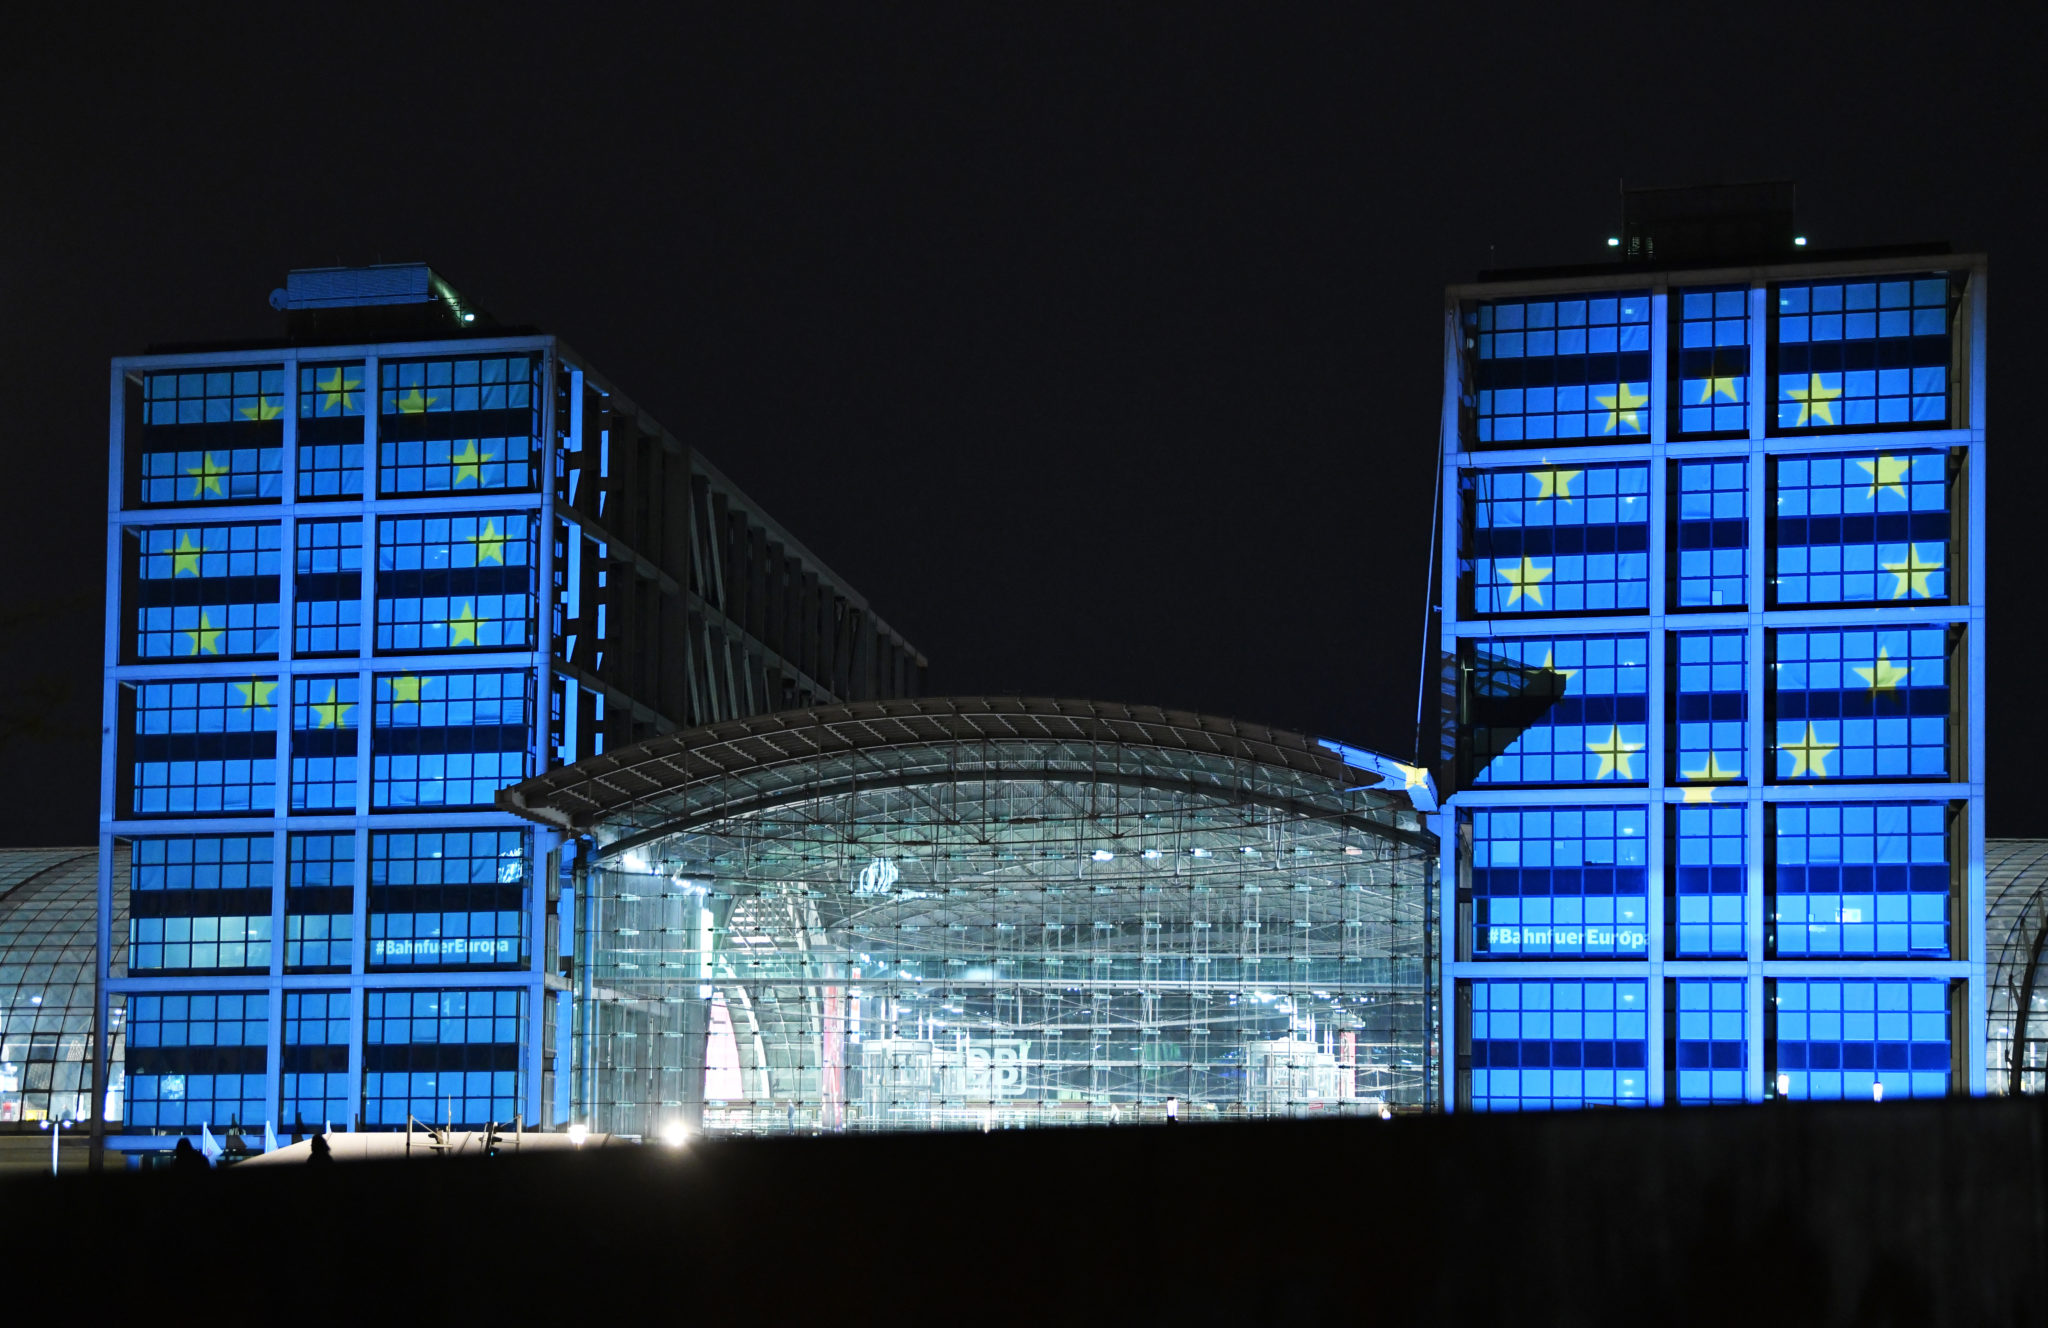 Deutsche Bahn celebrates Europe Day 2019 by illuminating Berlin Central Station in the EU flag